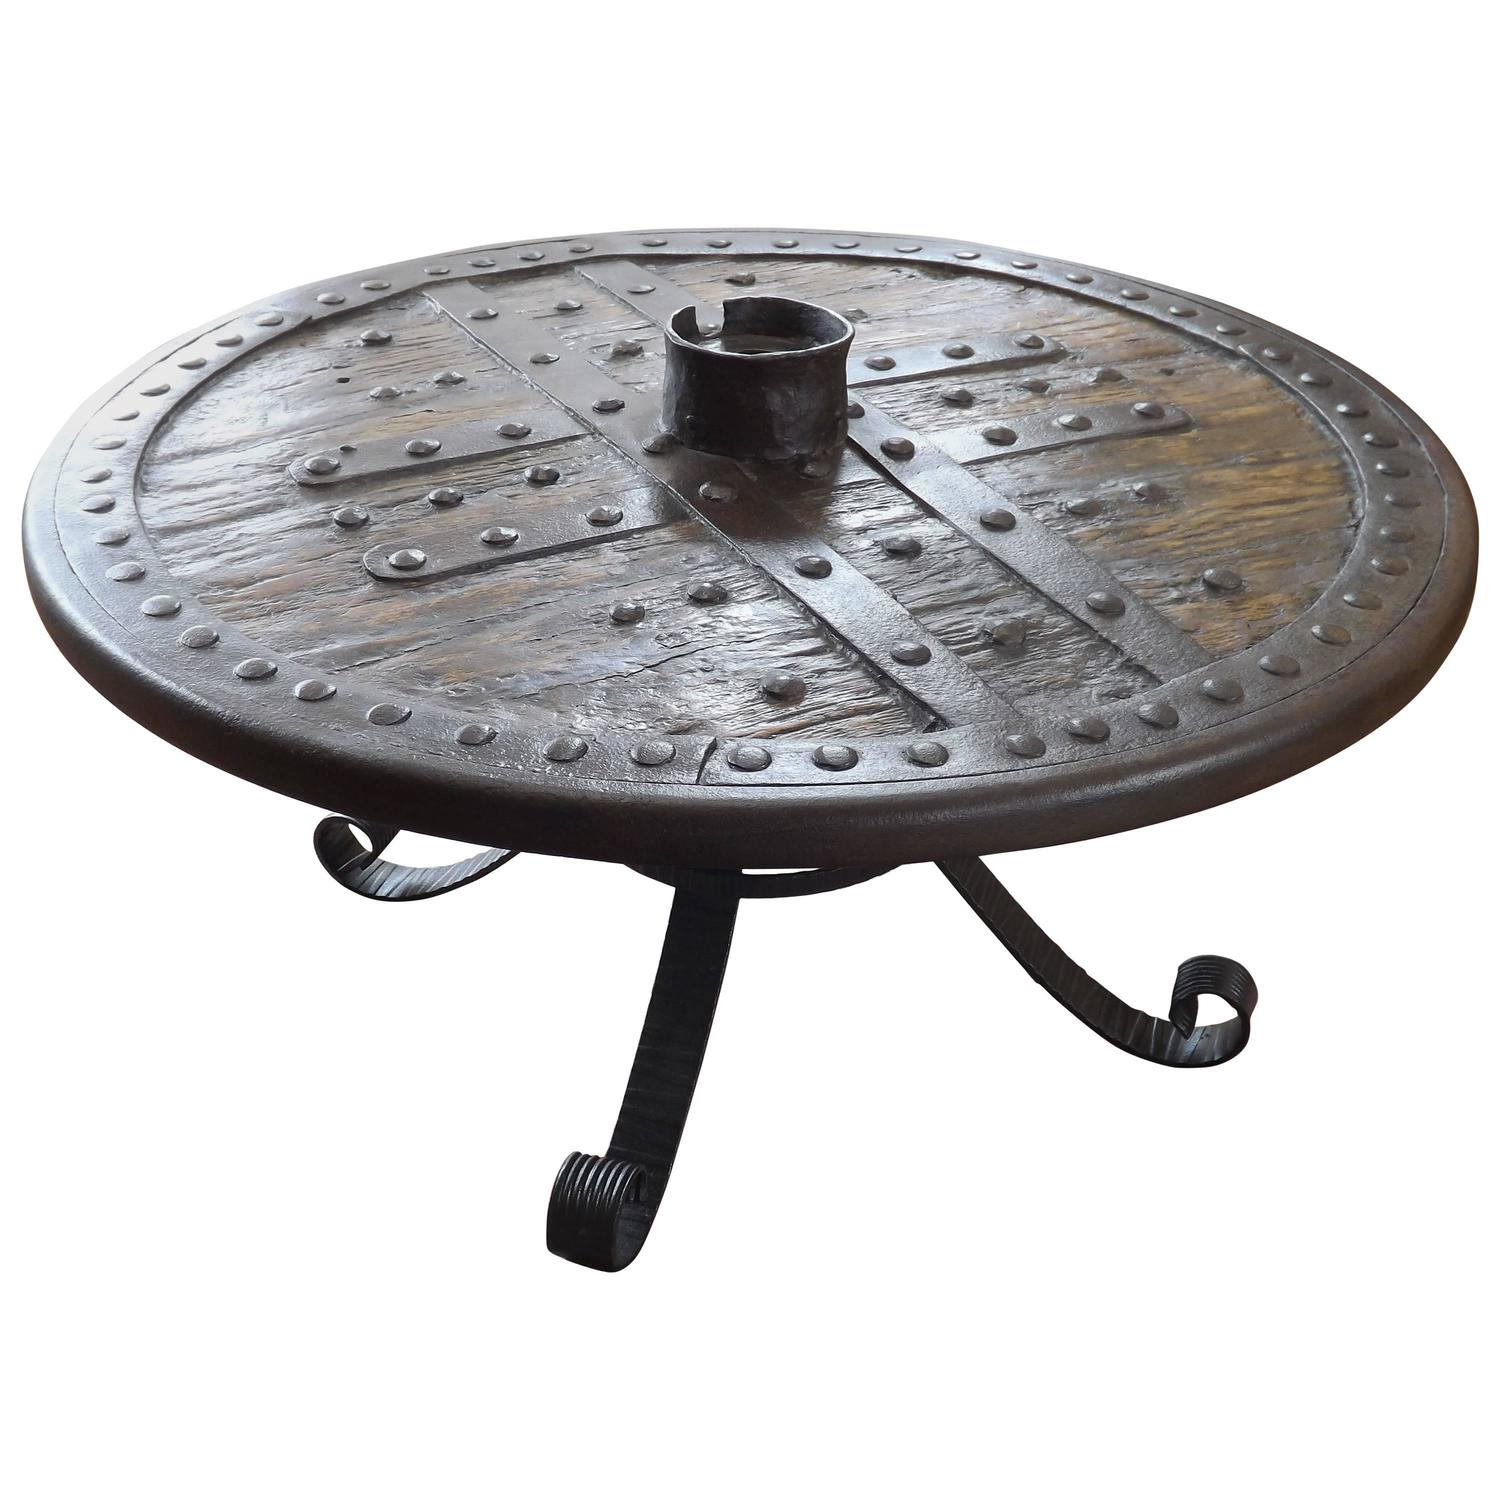 Medieval Forged Iron And Hardwood Wagon Or Chariot Wheel Coffee Table At 1stdibs